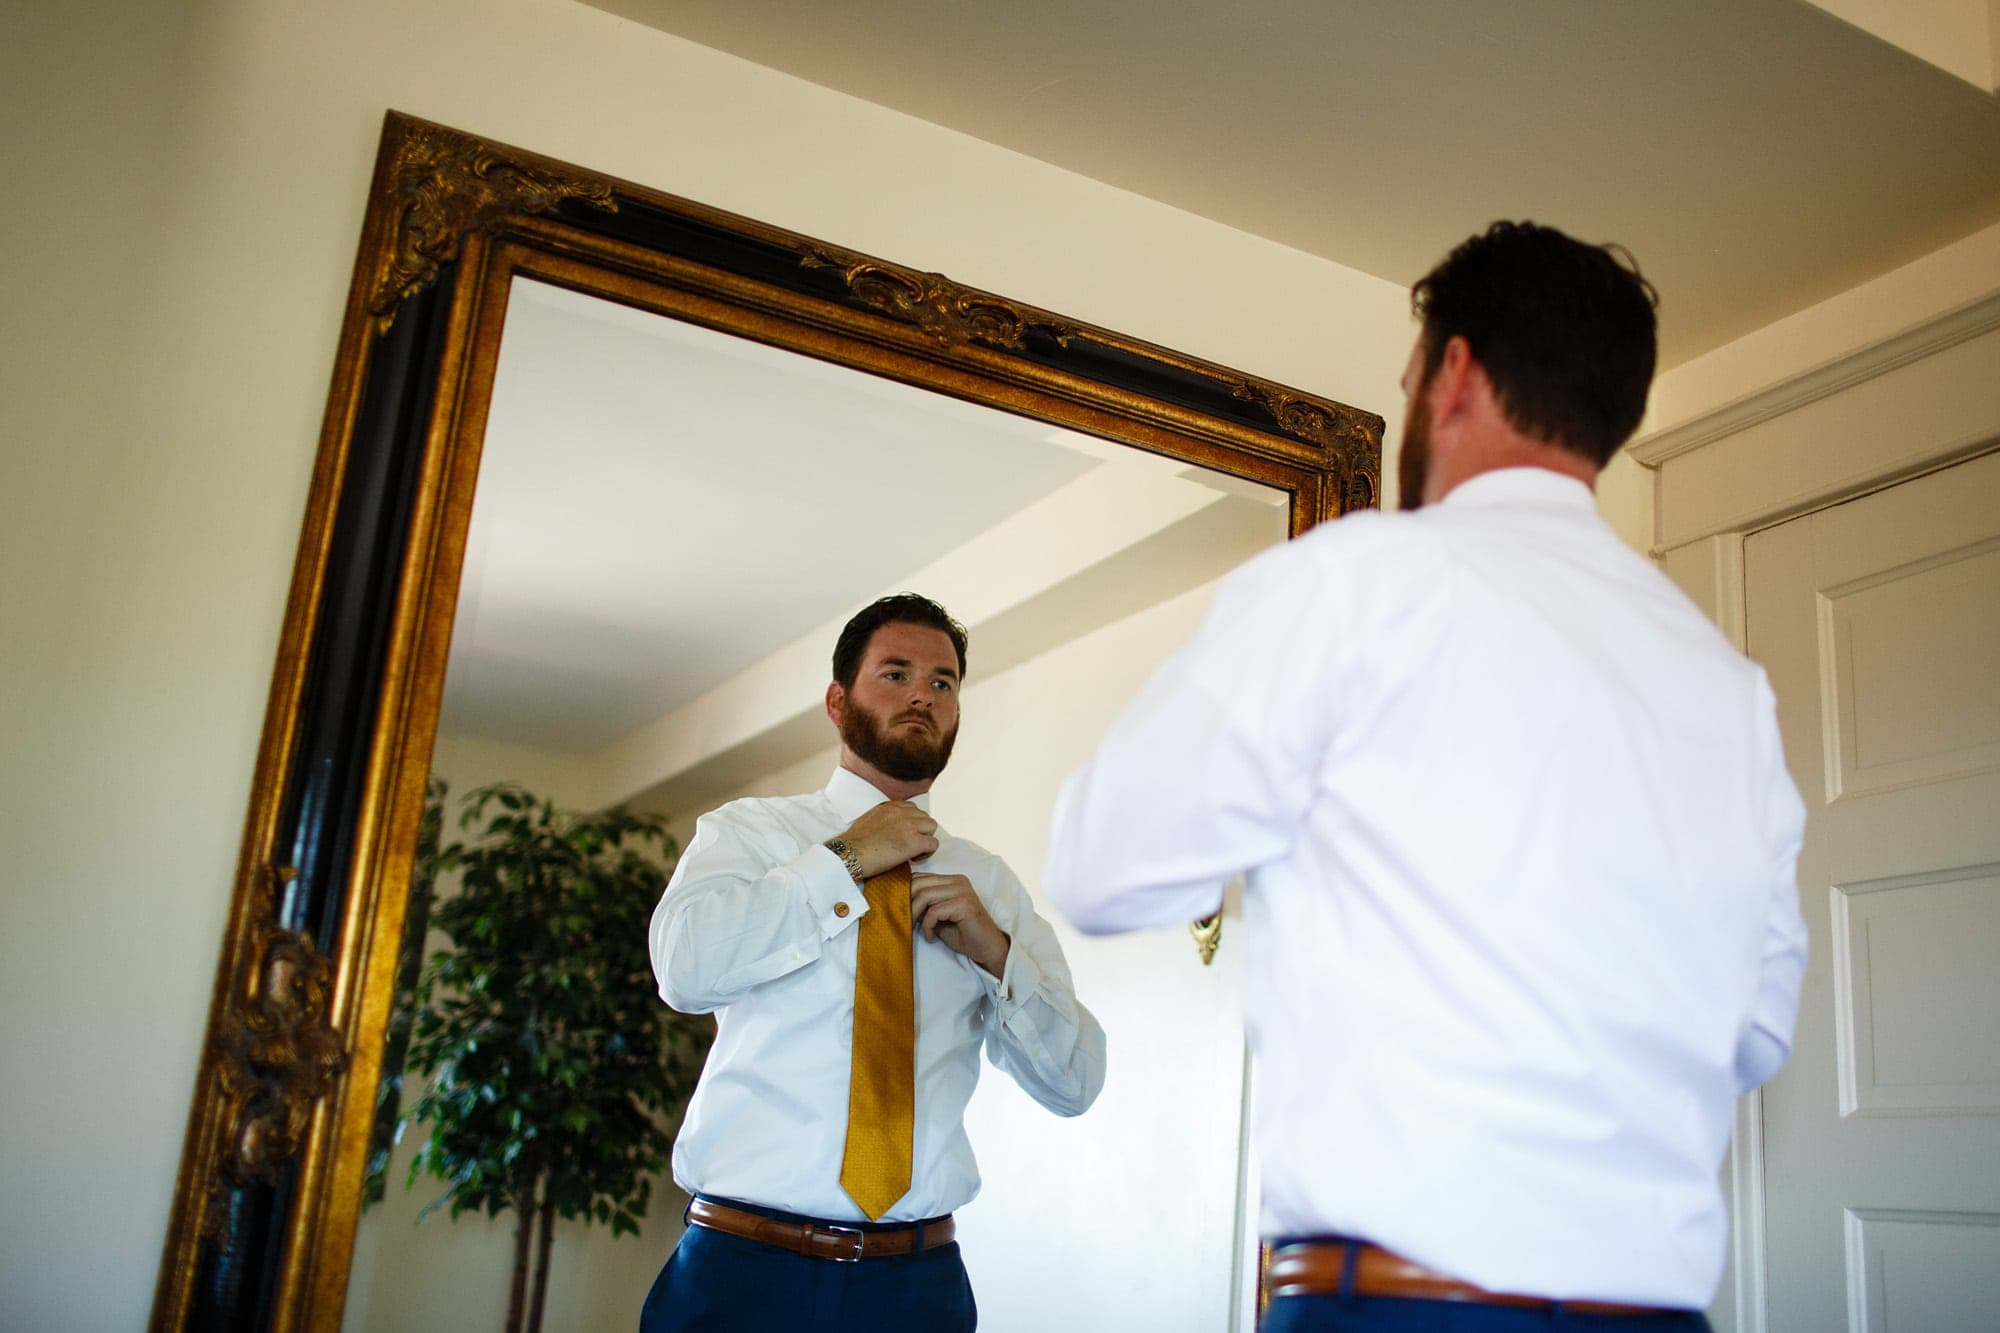 Blake Cannon ties his tie before his Willow Ridge Manor wedding